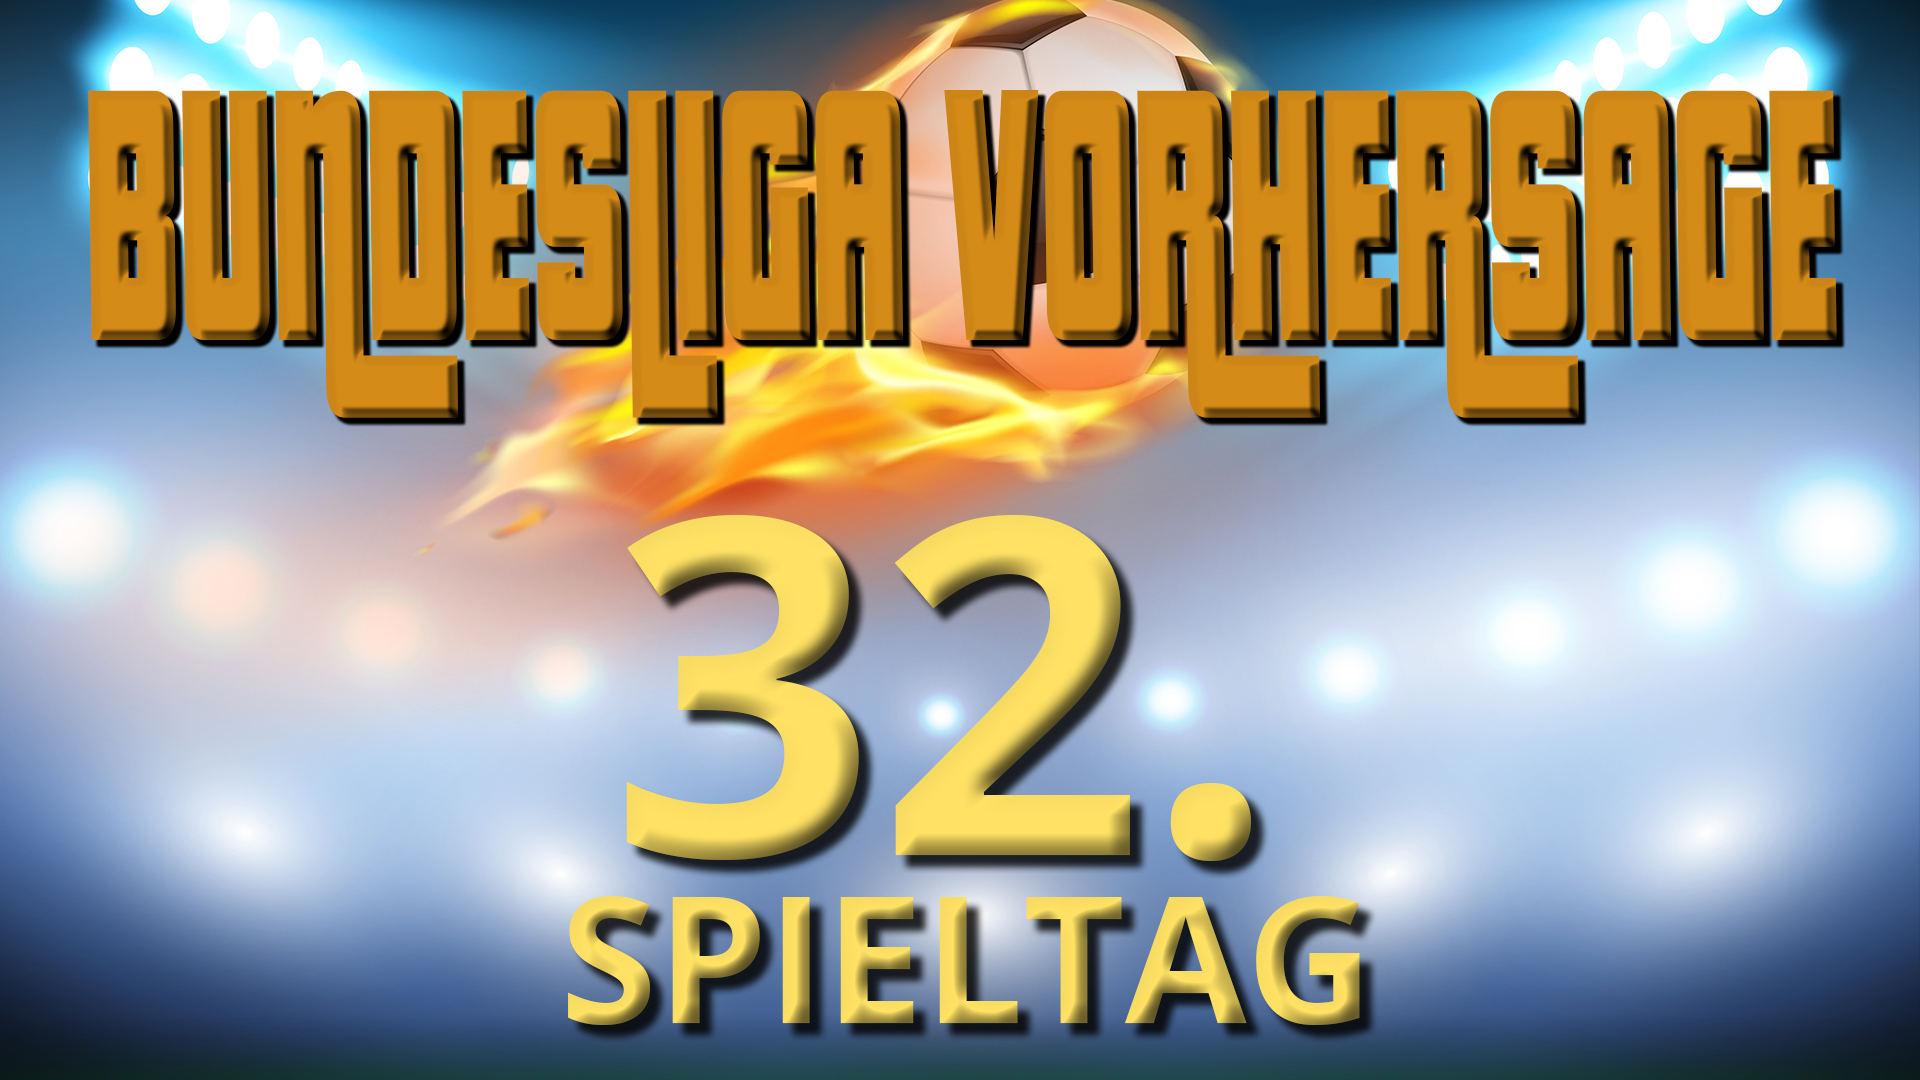 bundesliga voraussage